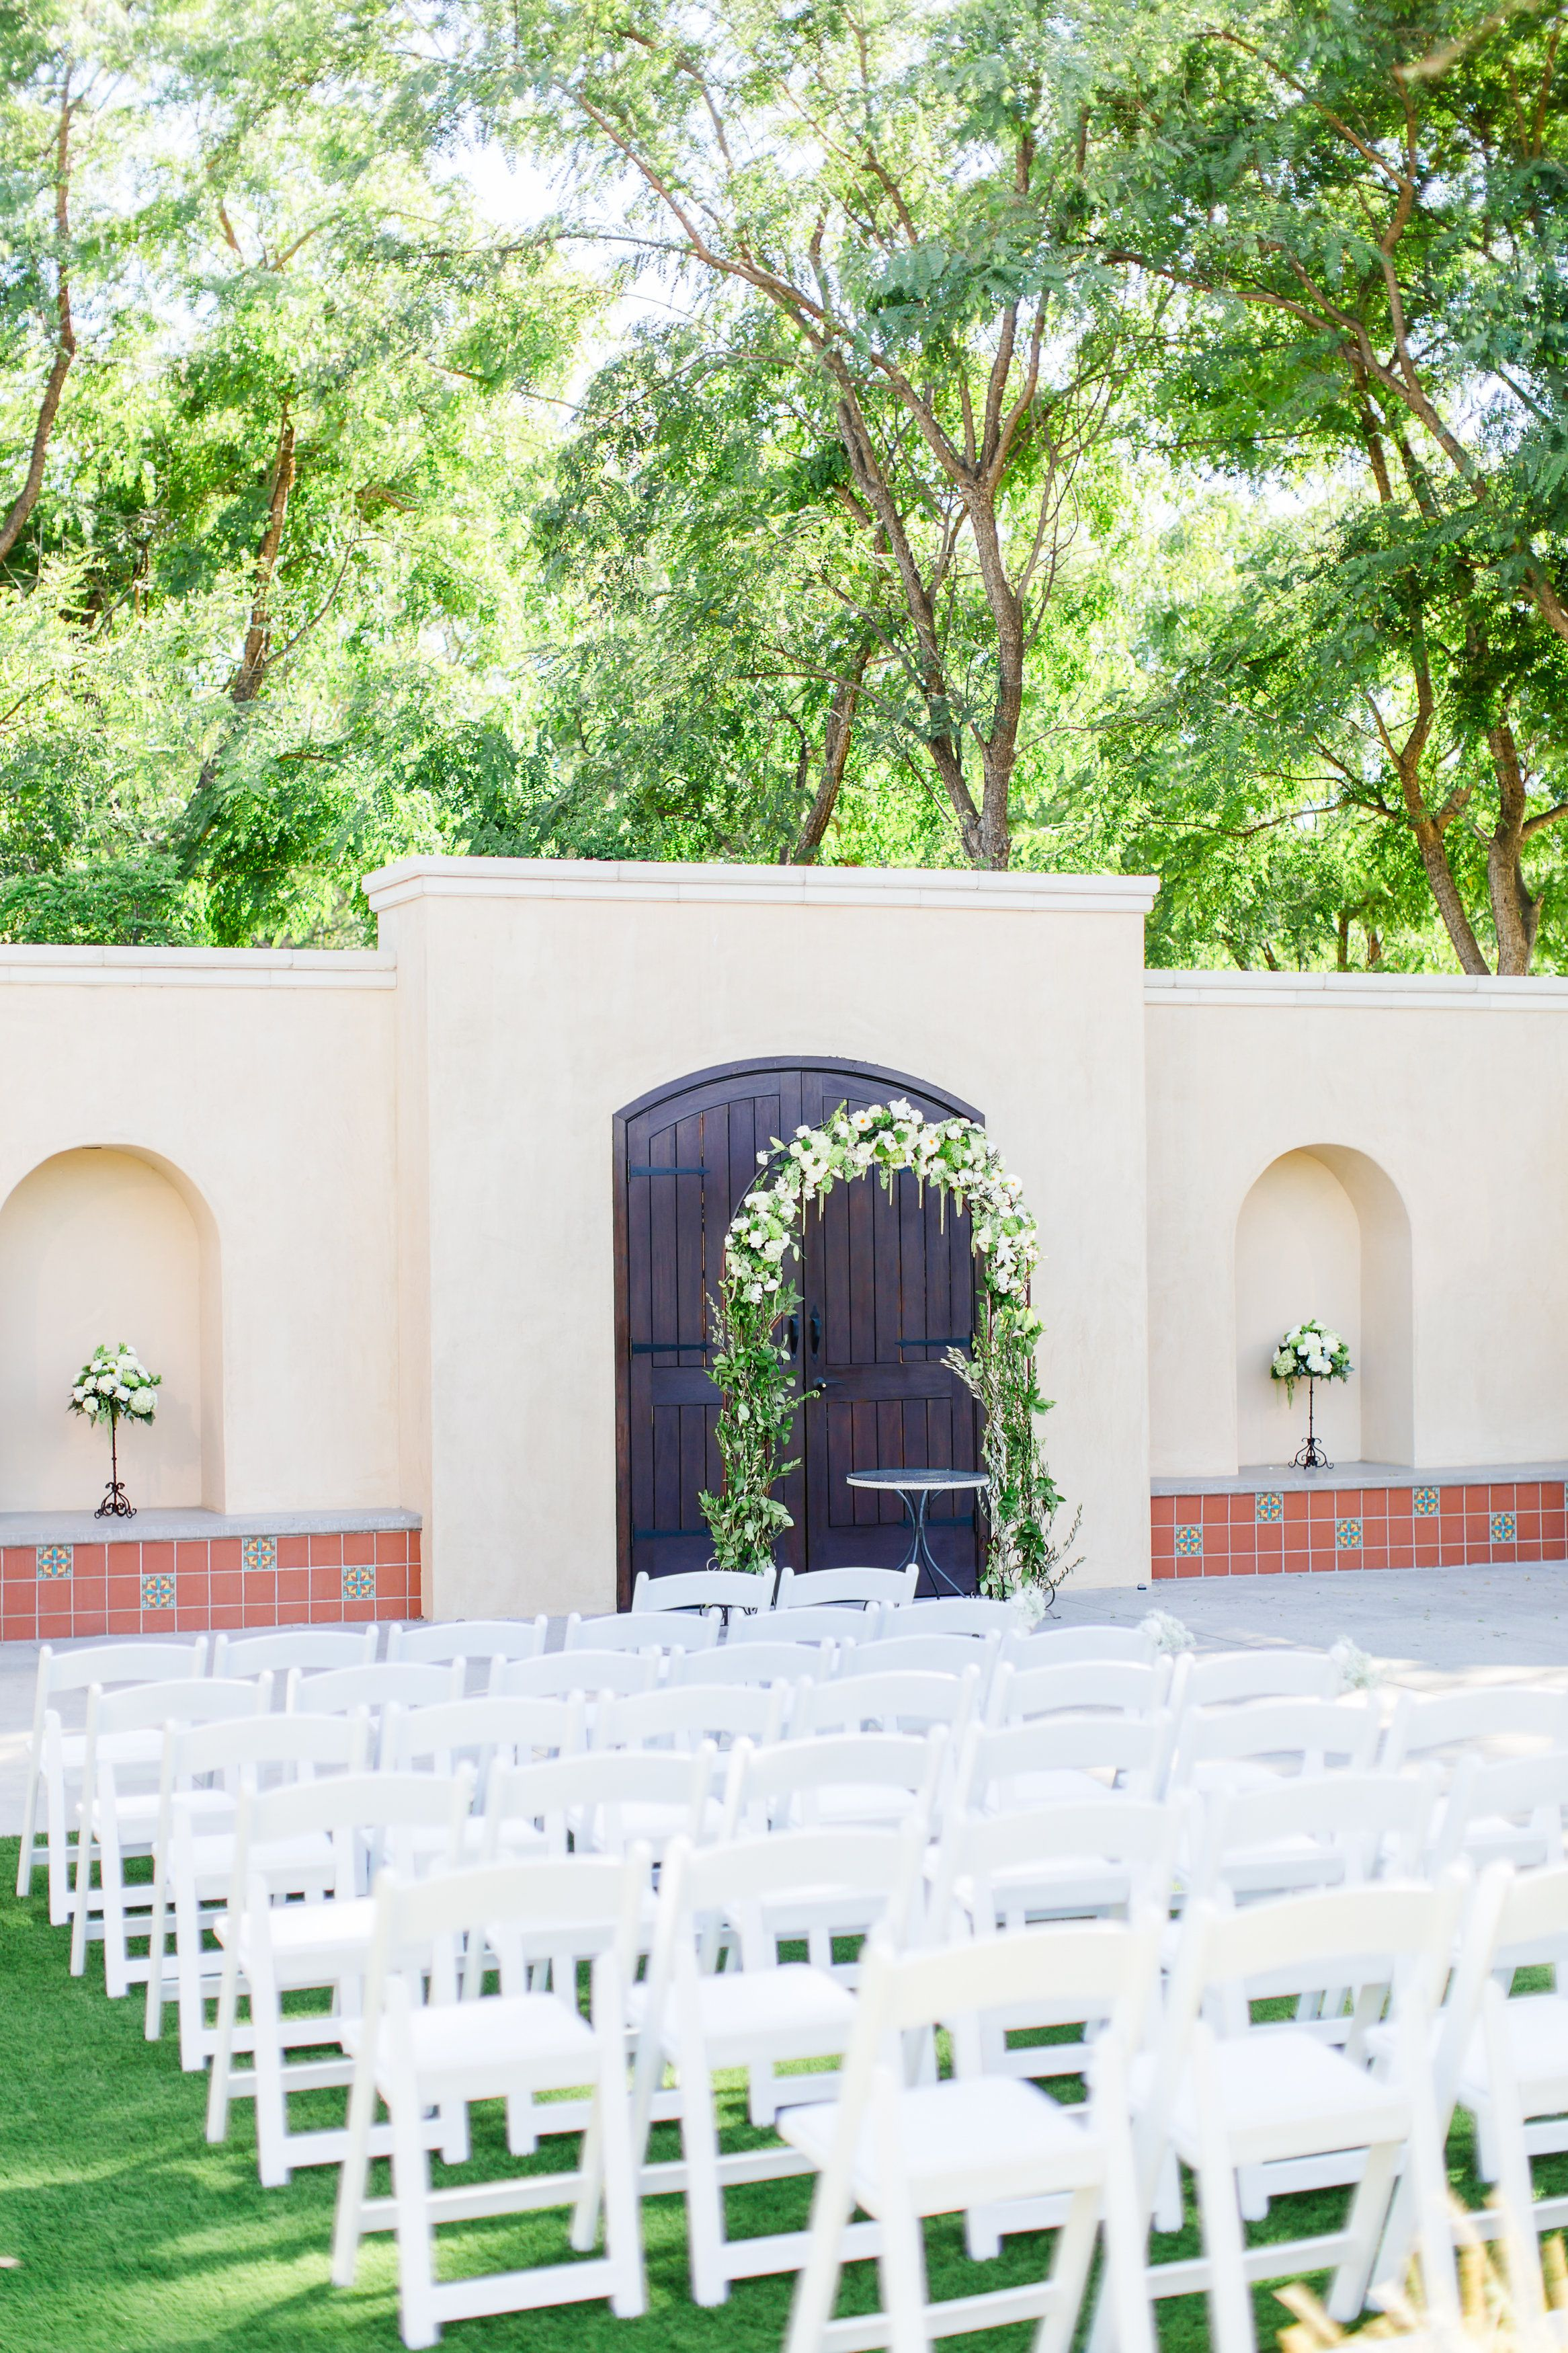 Outdoor garden wedding decoration ideas  The Gardens at Los Robles Greens  Gardens Wedding venues and Weddings